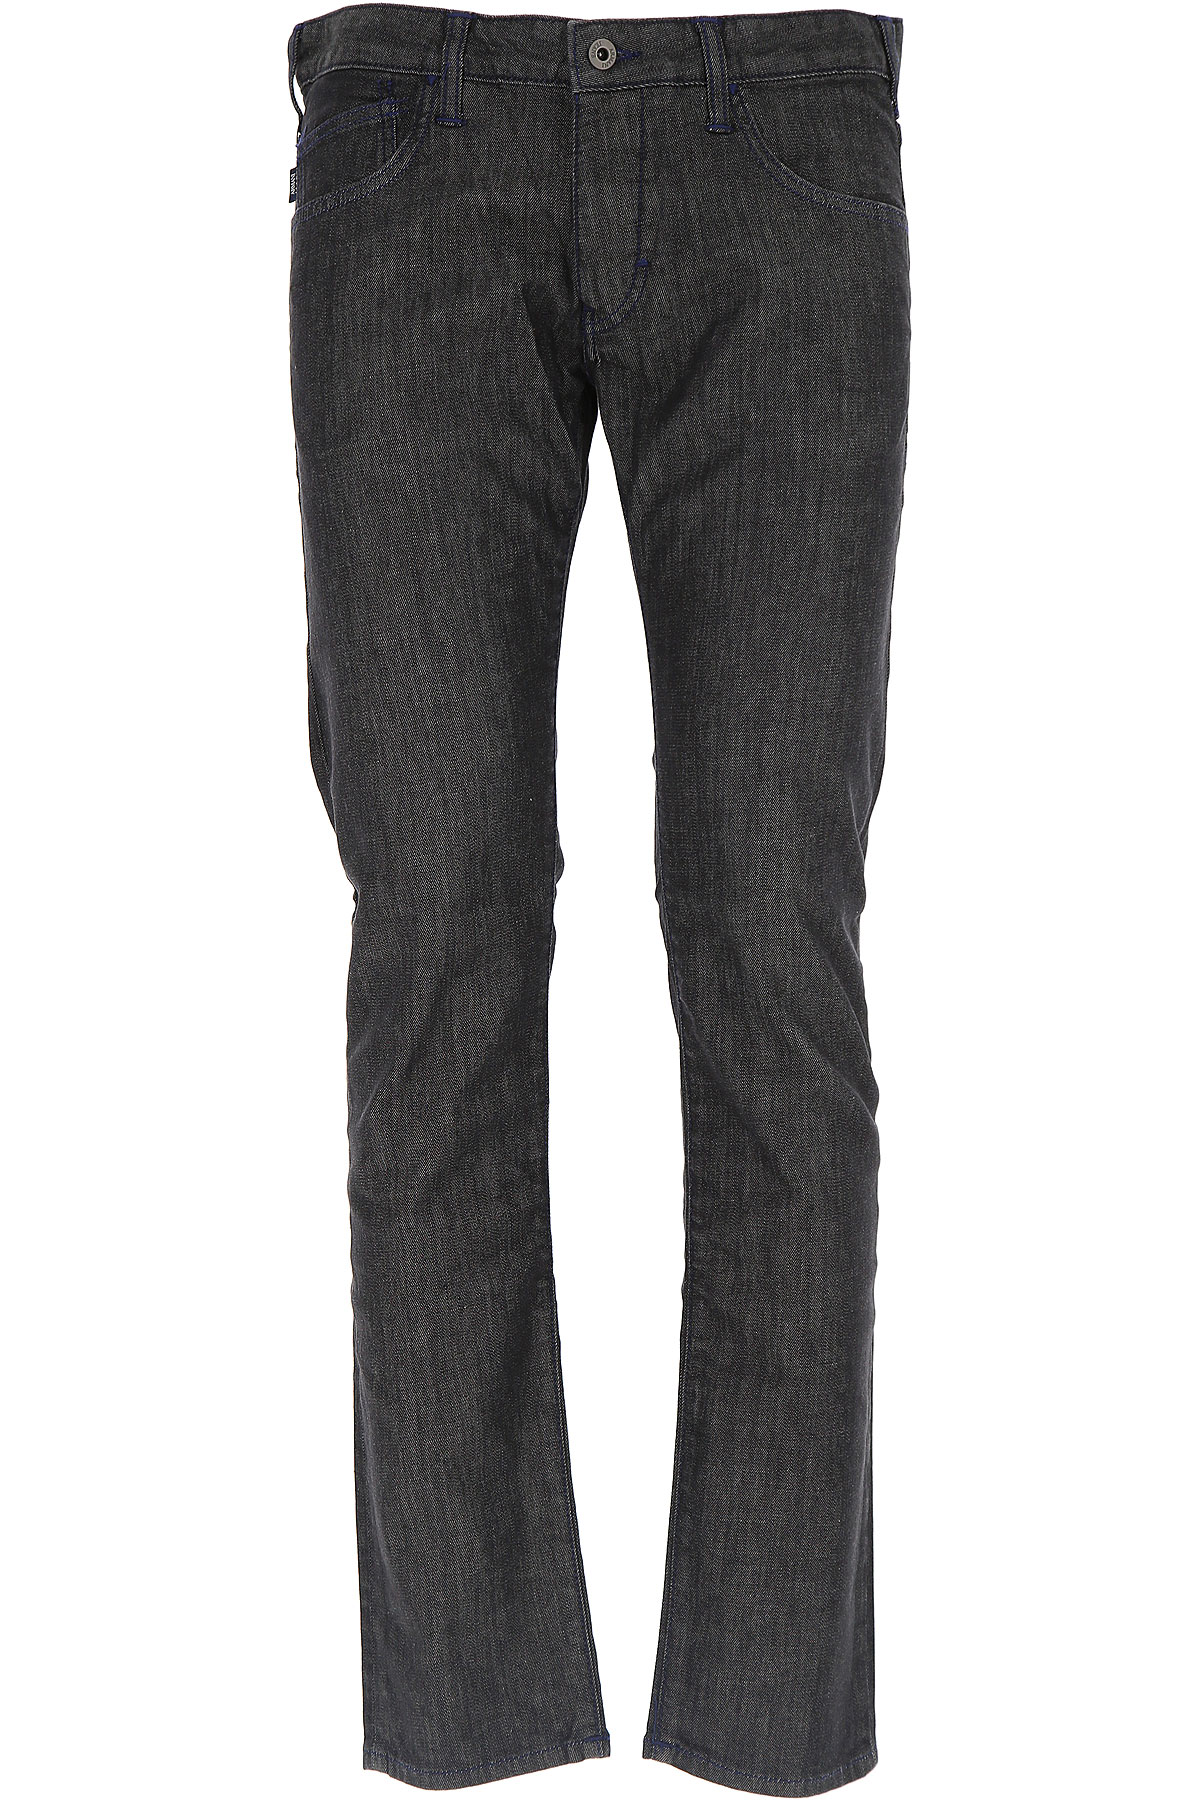 Emporio Armani Jeans On Sale in Outlet, Black, Cotton, 2017, 29 30 32 34